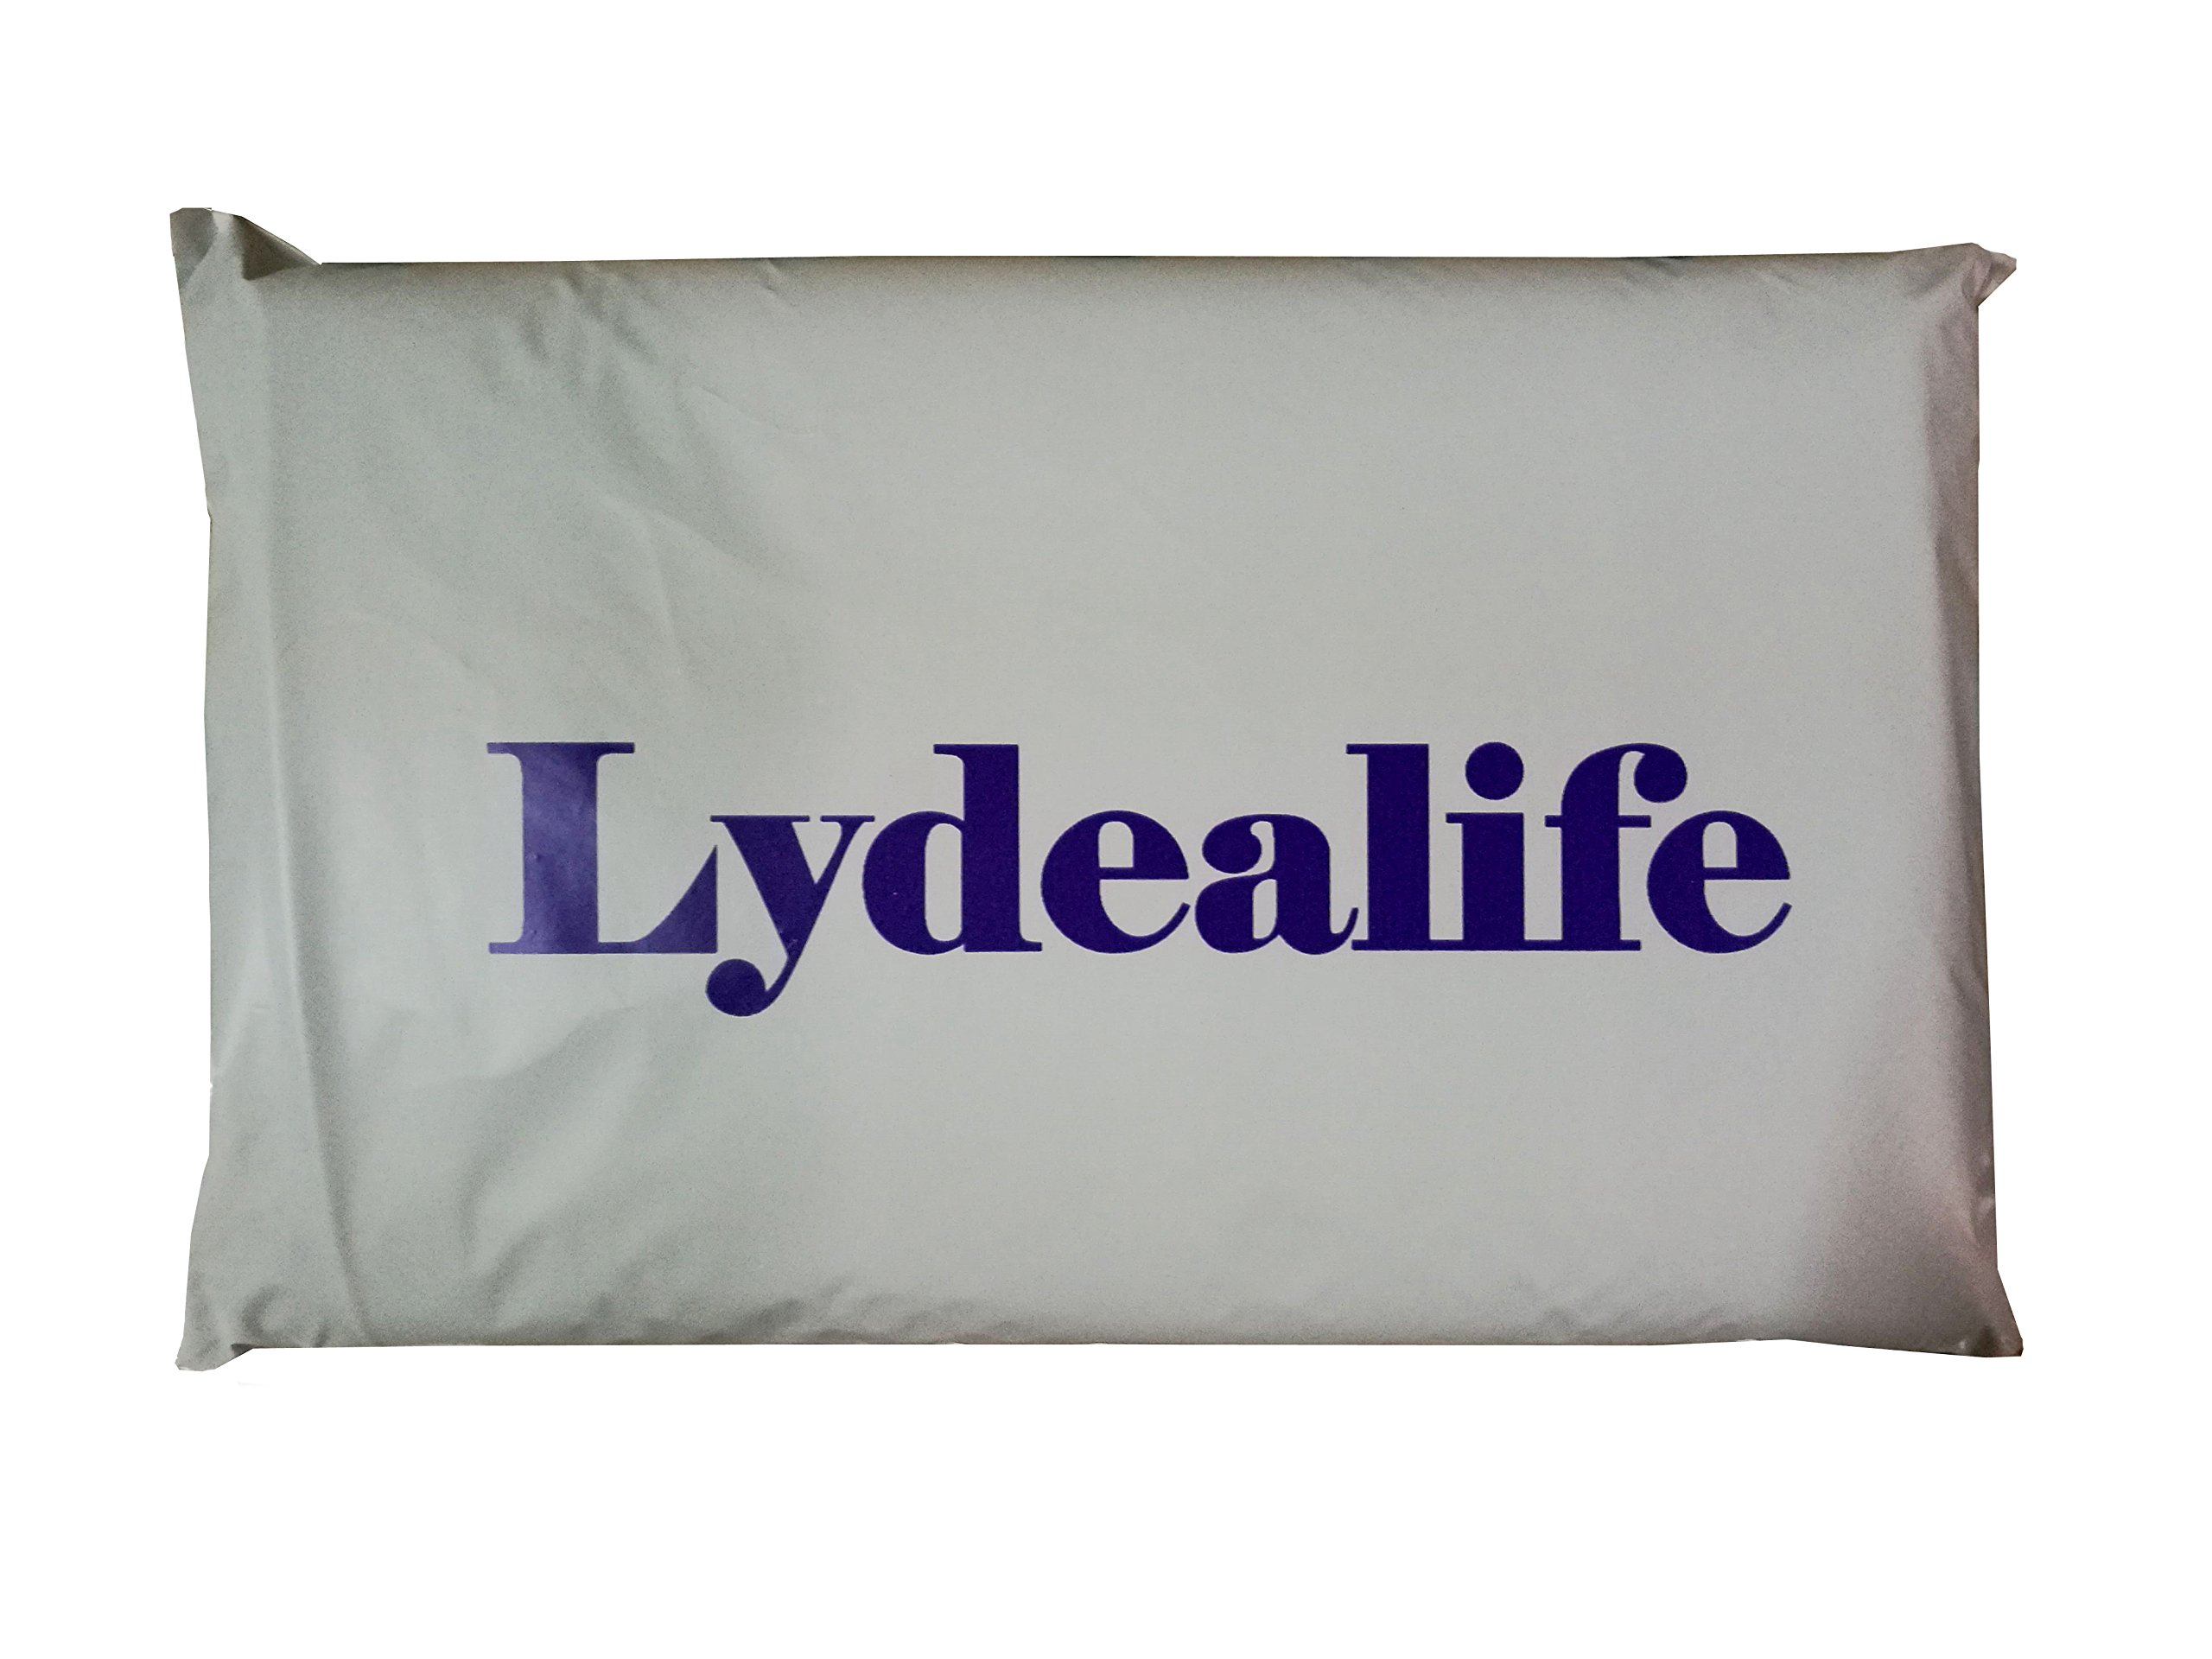 Lydealife (TM)18 X 18'' Cotton Linen Decorative Couple Throw Pillow Cover Cushion Case Couple Pillow Case, Set of 2 - I Love You & Love you More LD094 by Lydealife (Image #5)